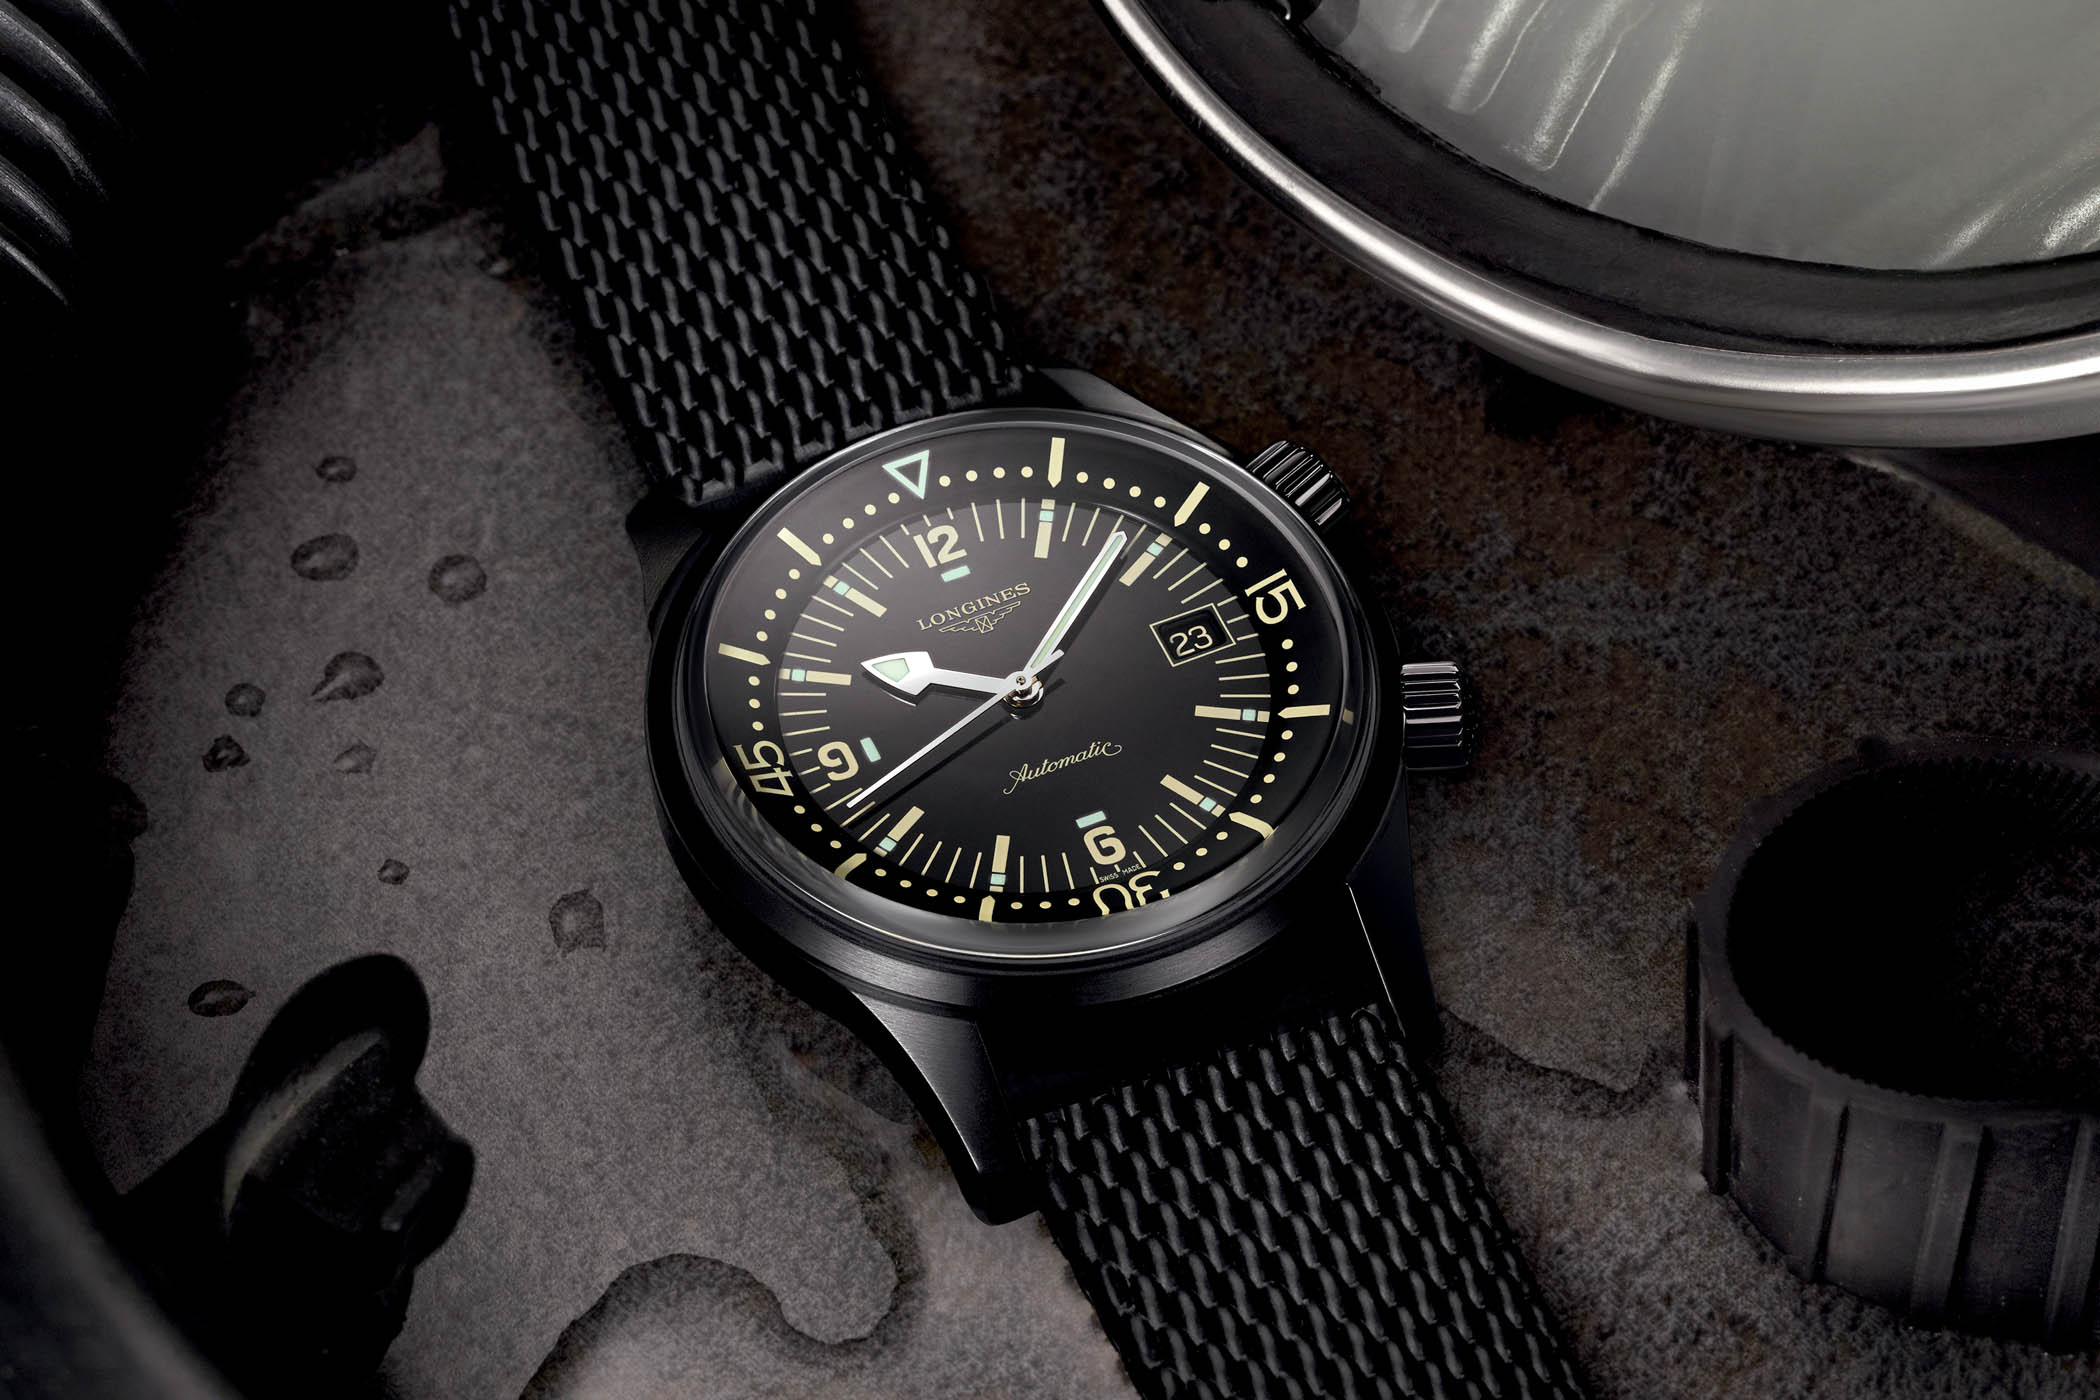 575acd8e3847 Longines Legend Diver Black PVD with new movement - Baselworld 2018 ...